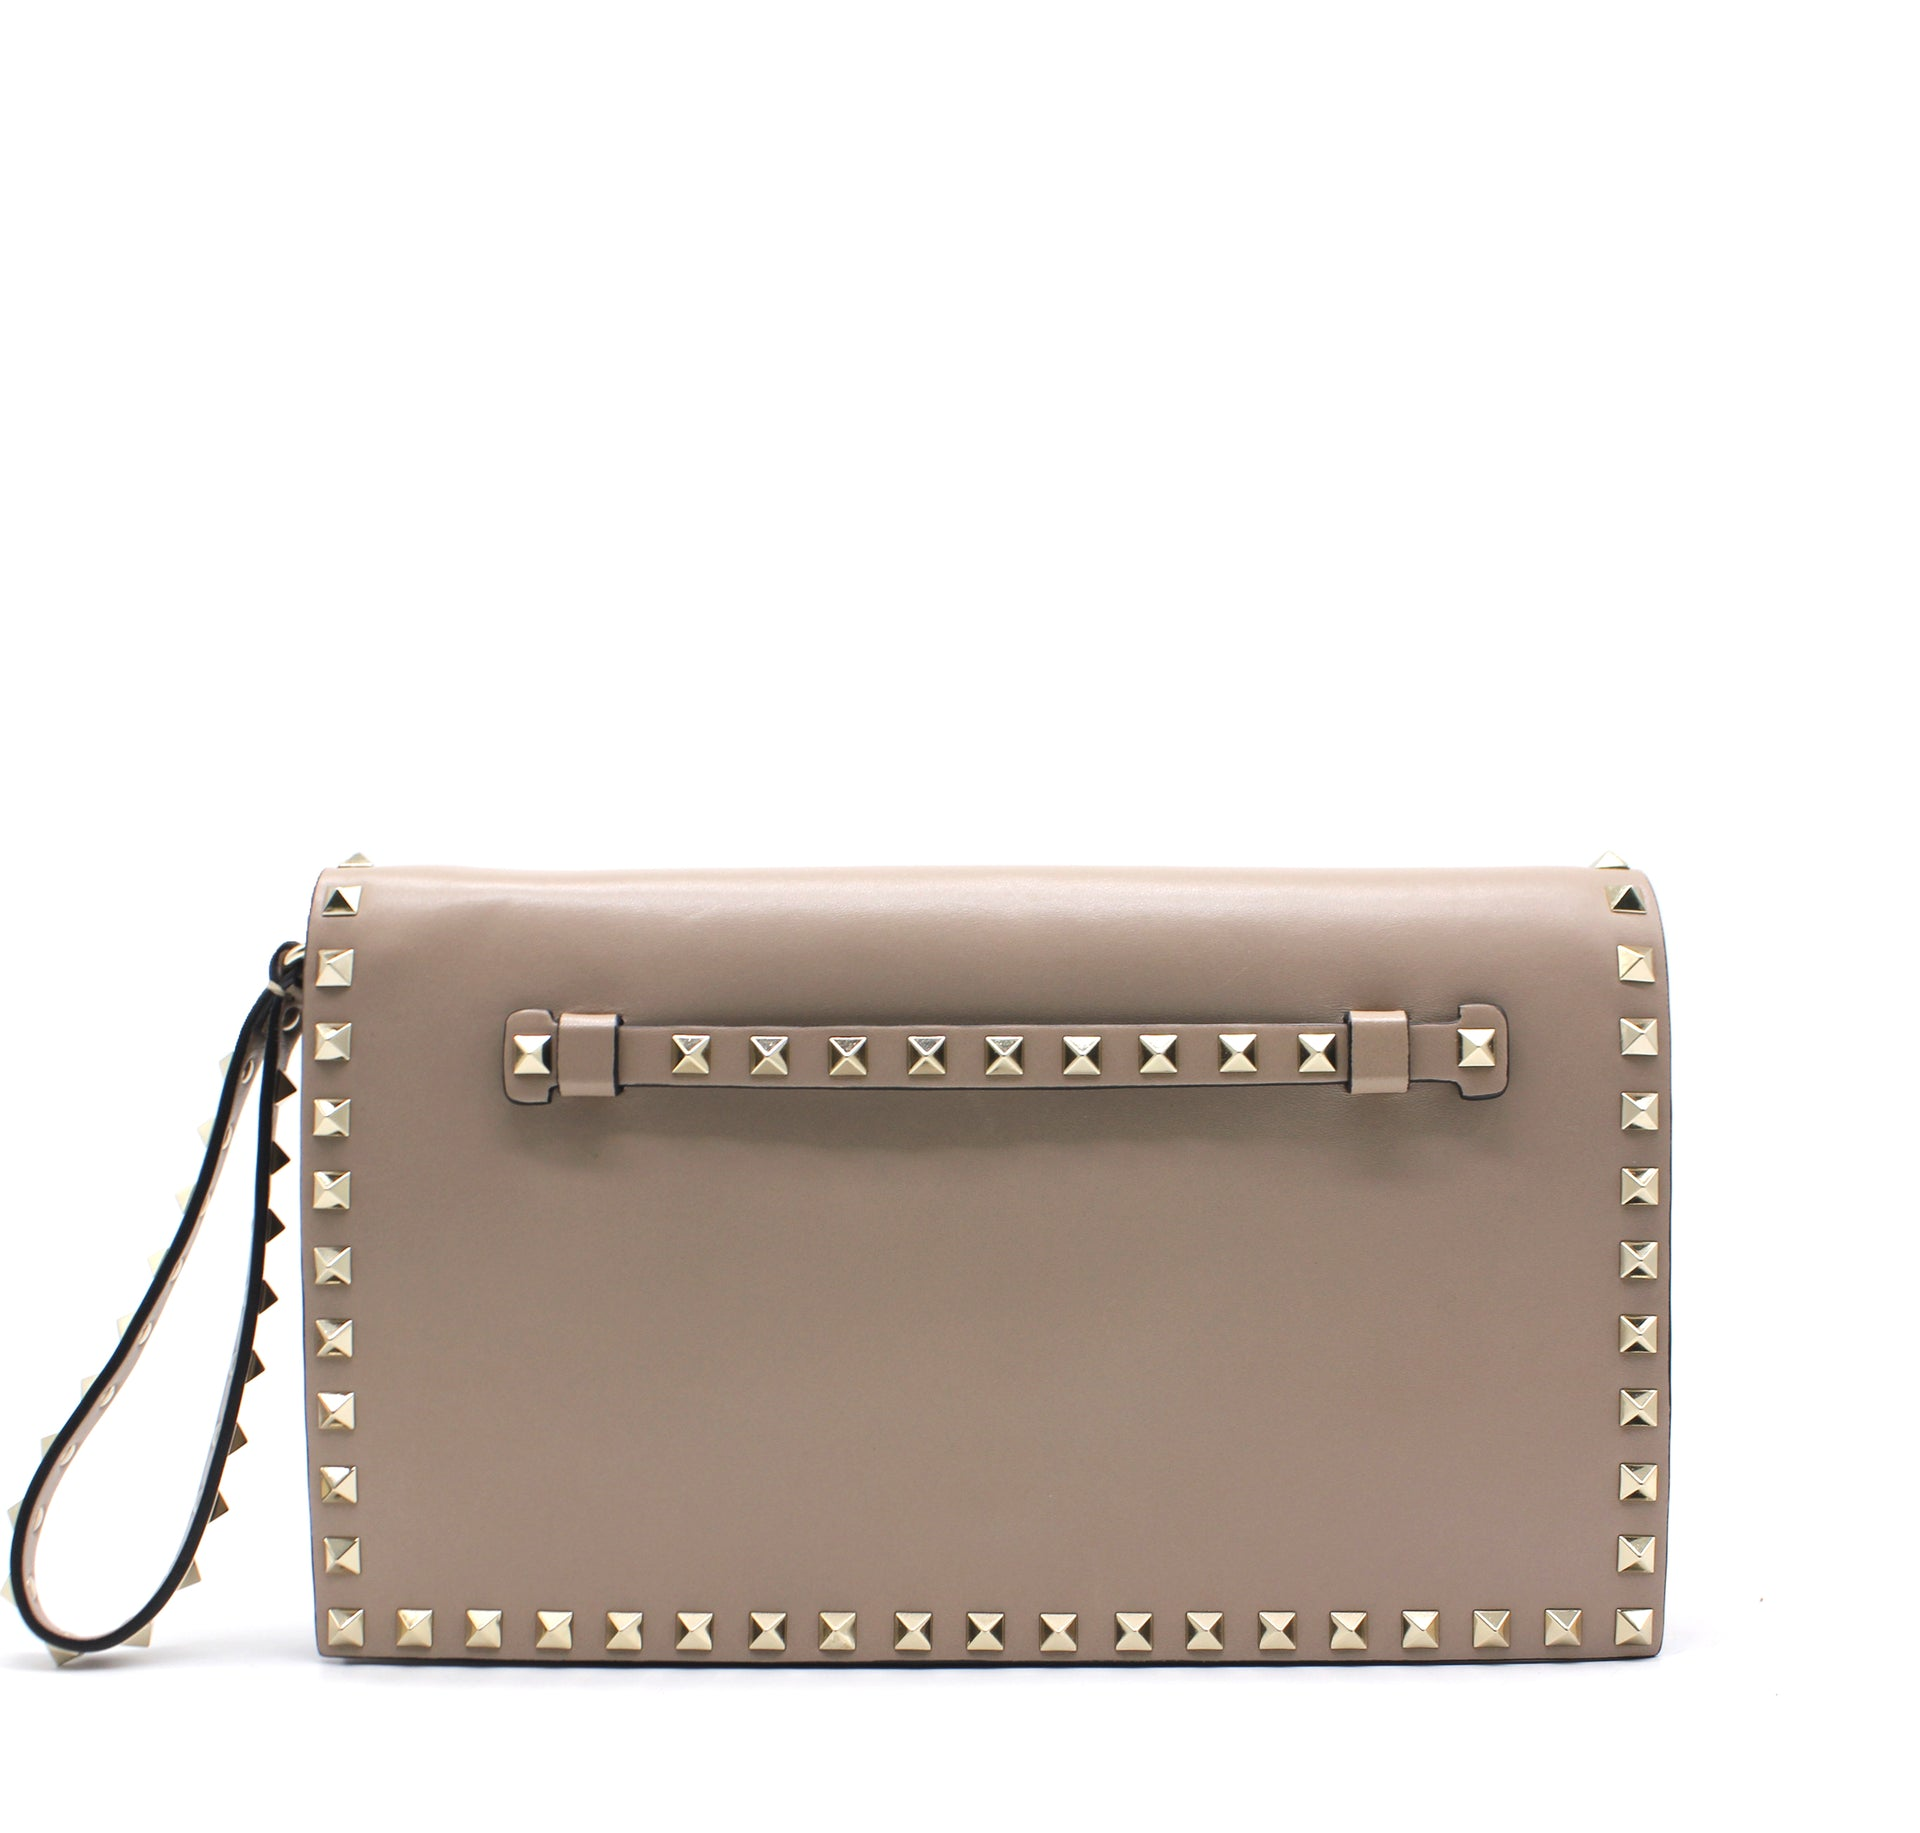 Valentino Garavani The Rockstud leather clutch